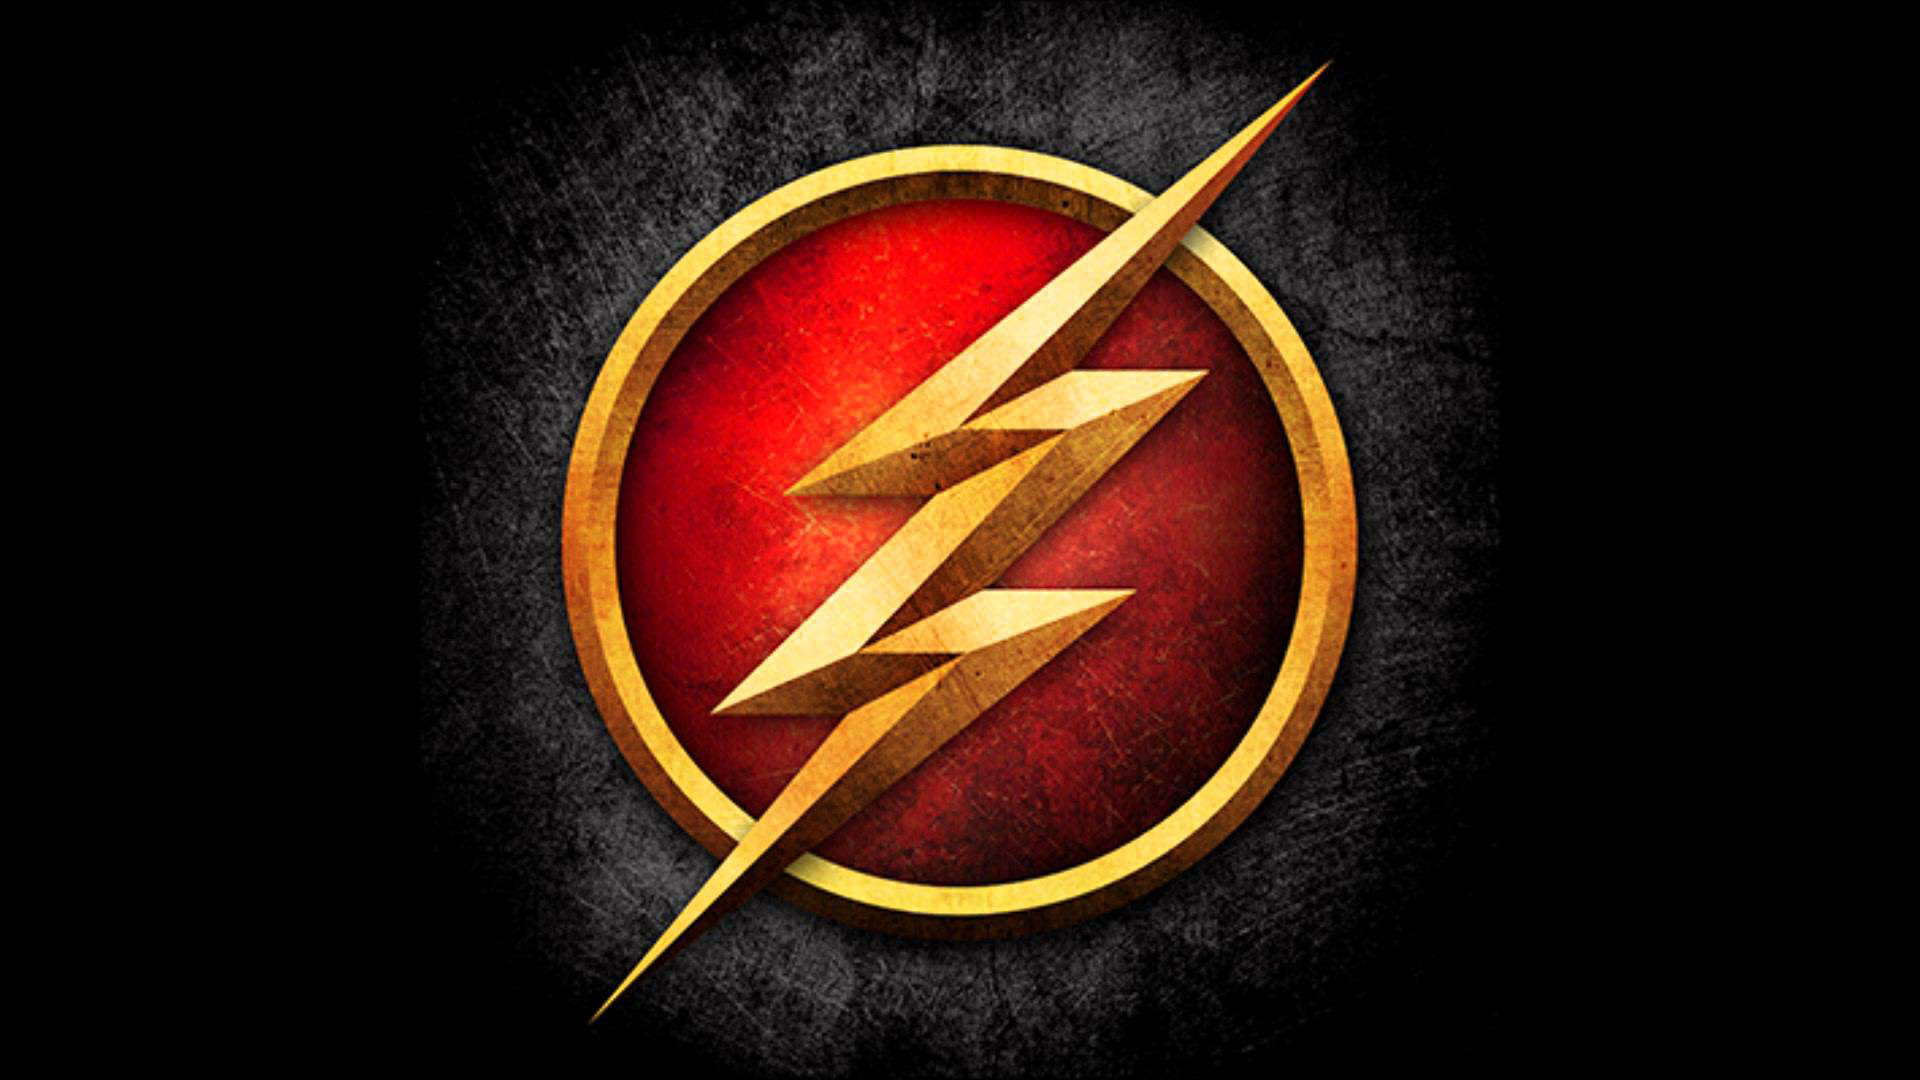 The Flash Wallpaper Hd 82 Images